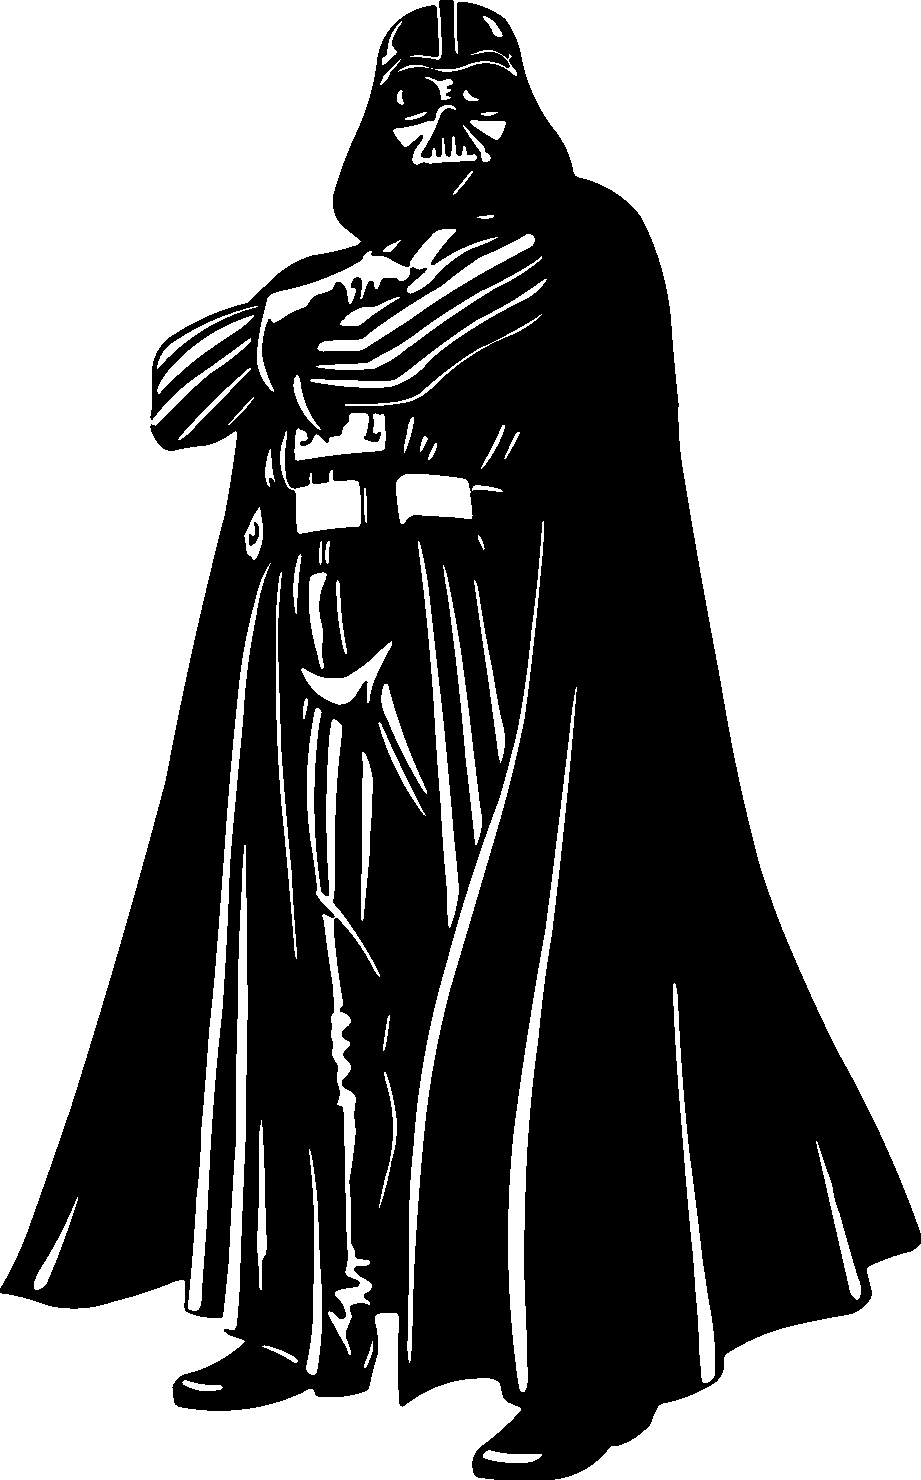 Darth vader clipart logo. Clip arts for free